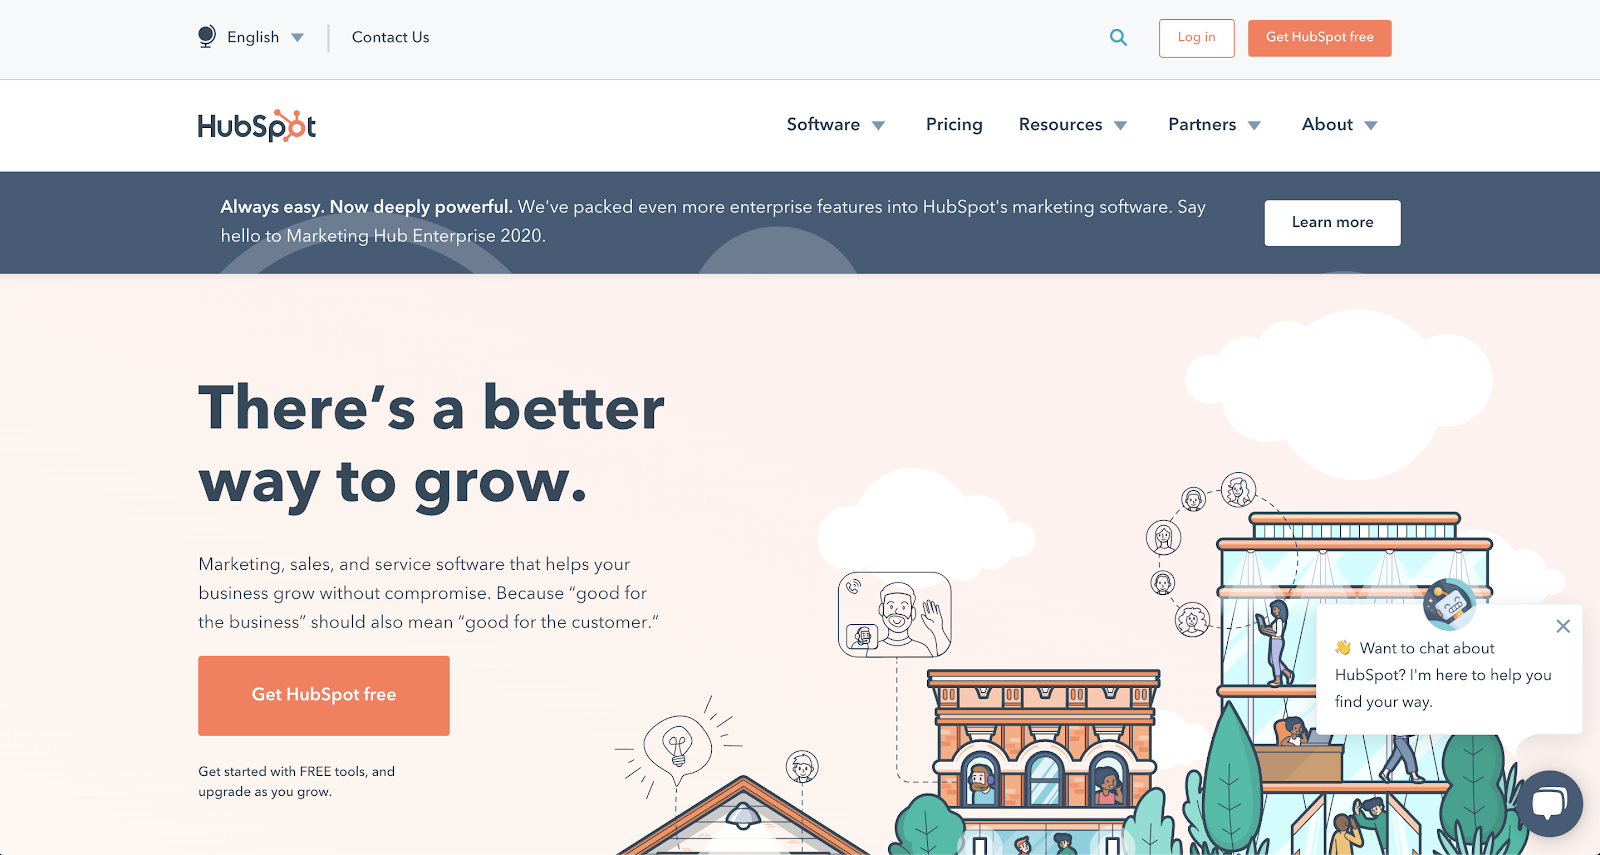 Hubspot's home page